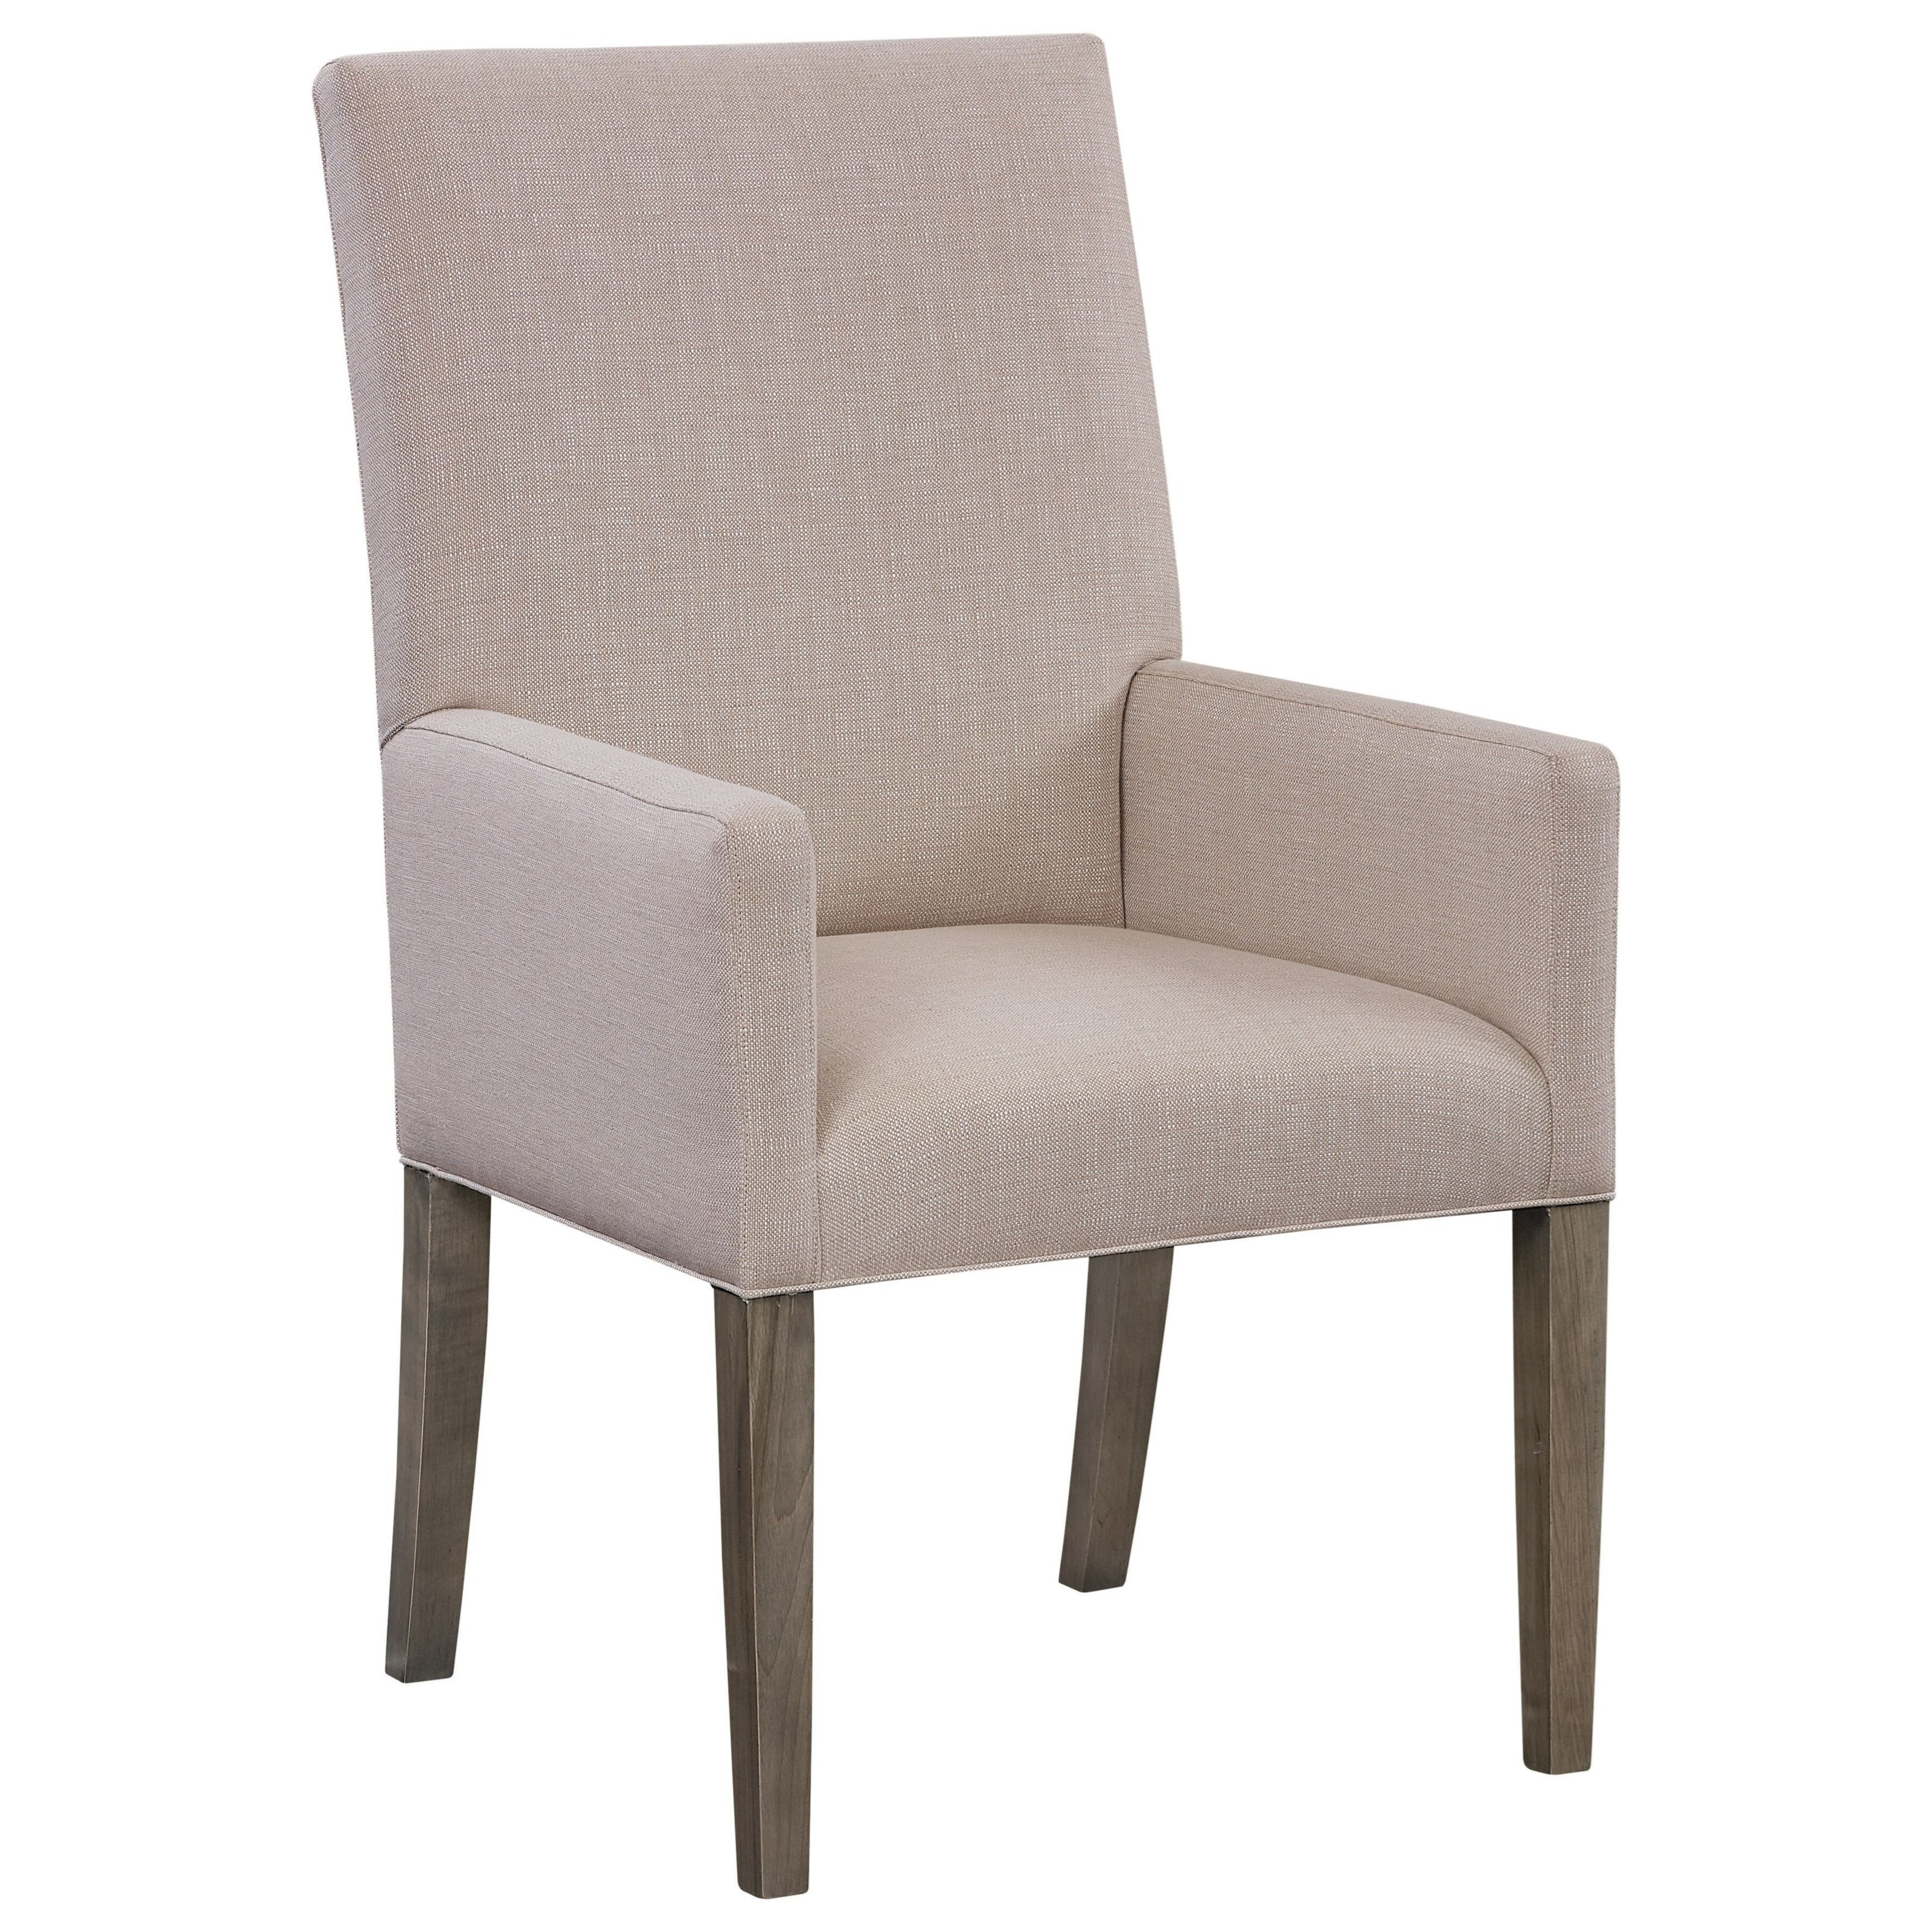 BenchMade Arm Chair by Bassett at Williams & Kay